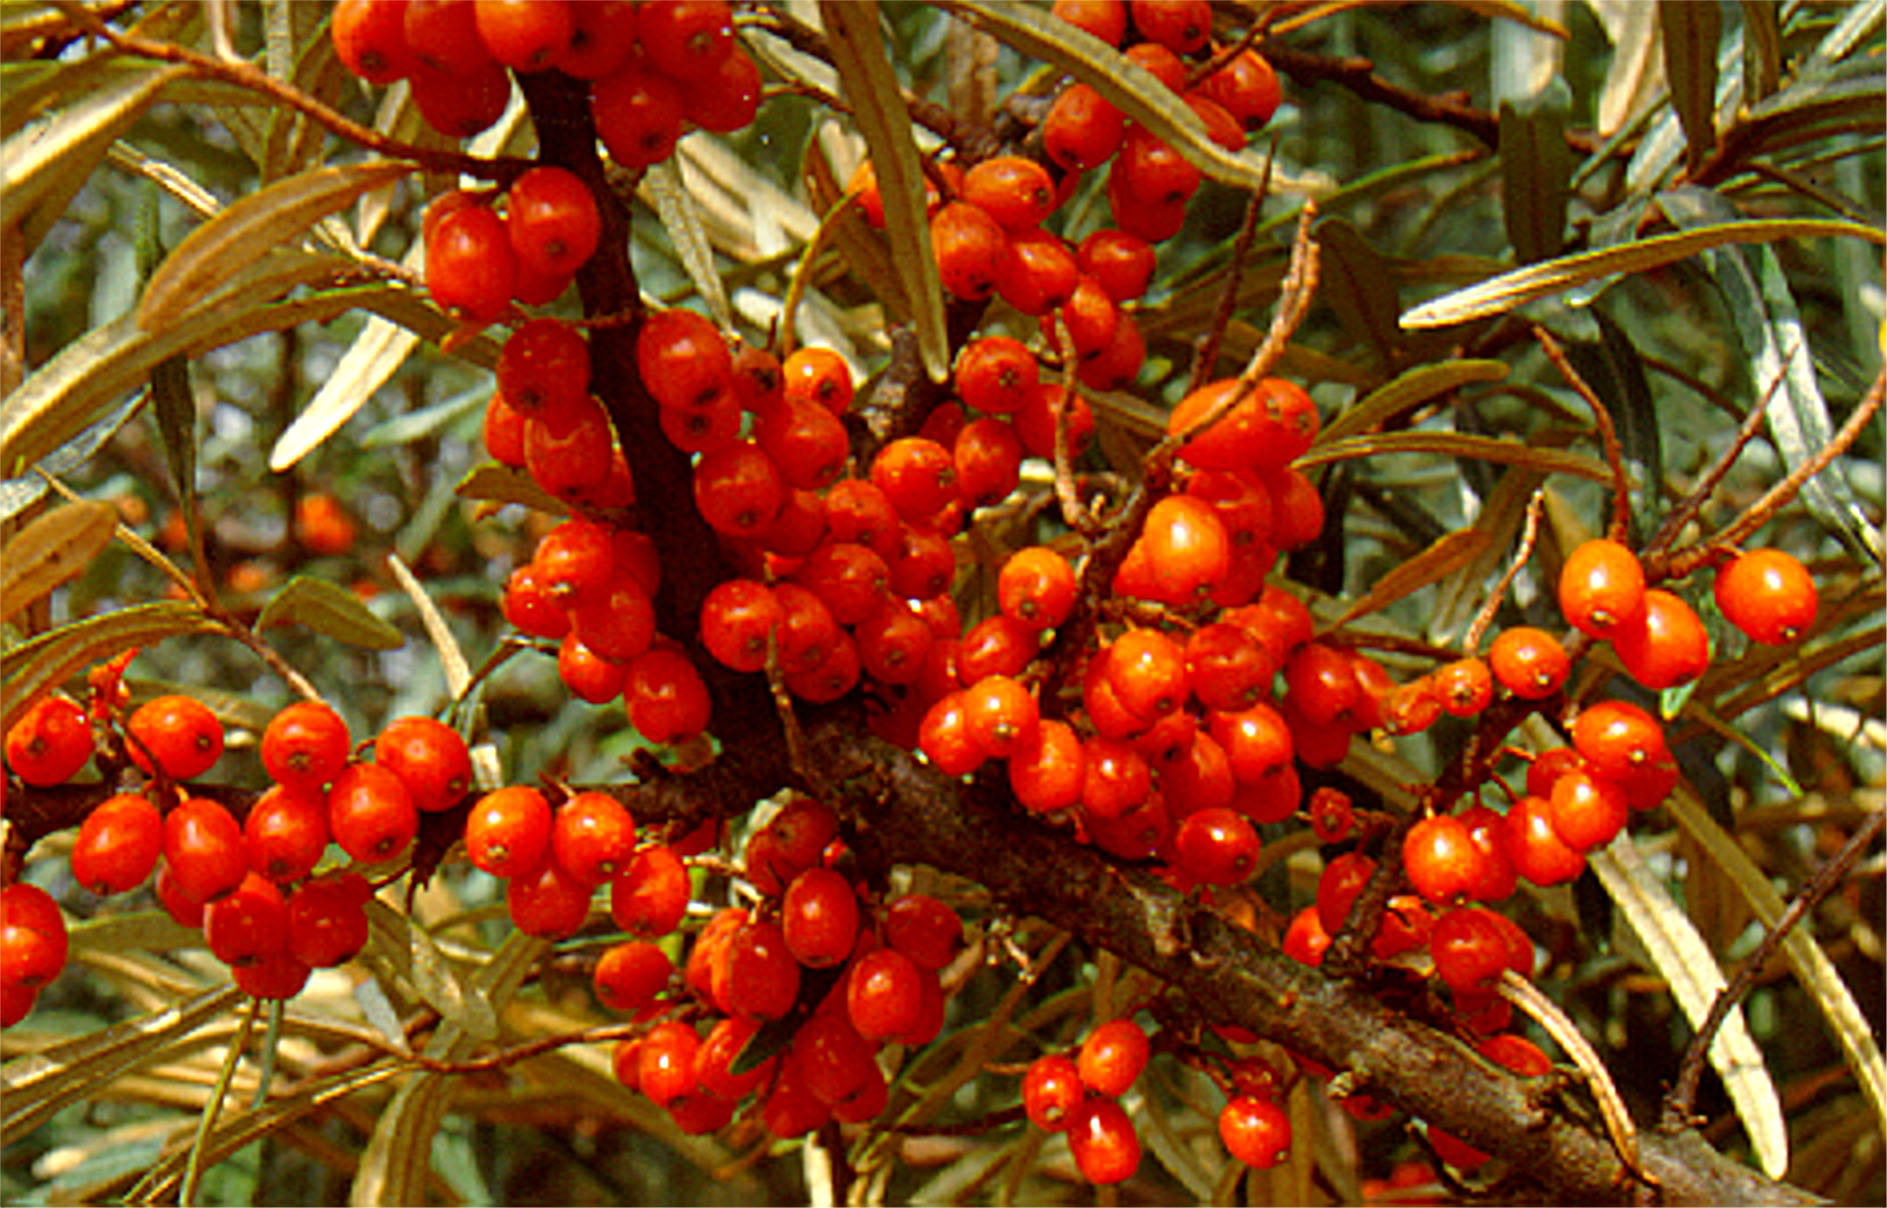 英國天然沙棘植物油| UK natural seabuckthorn plant oil